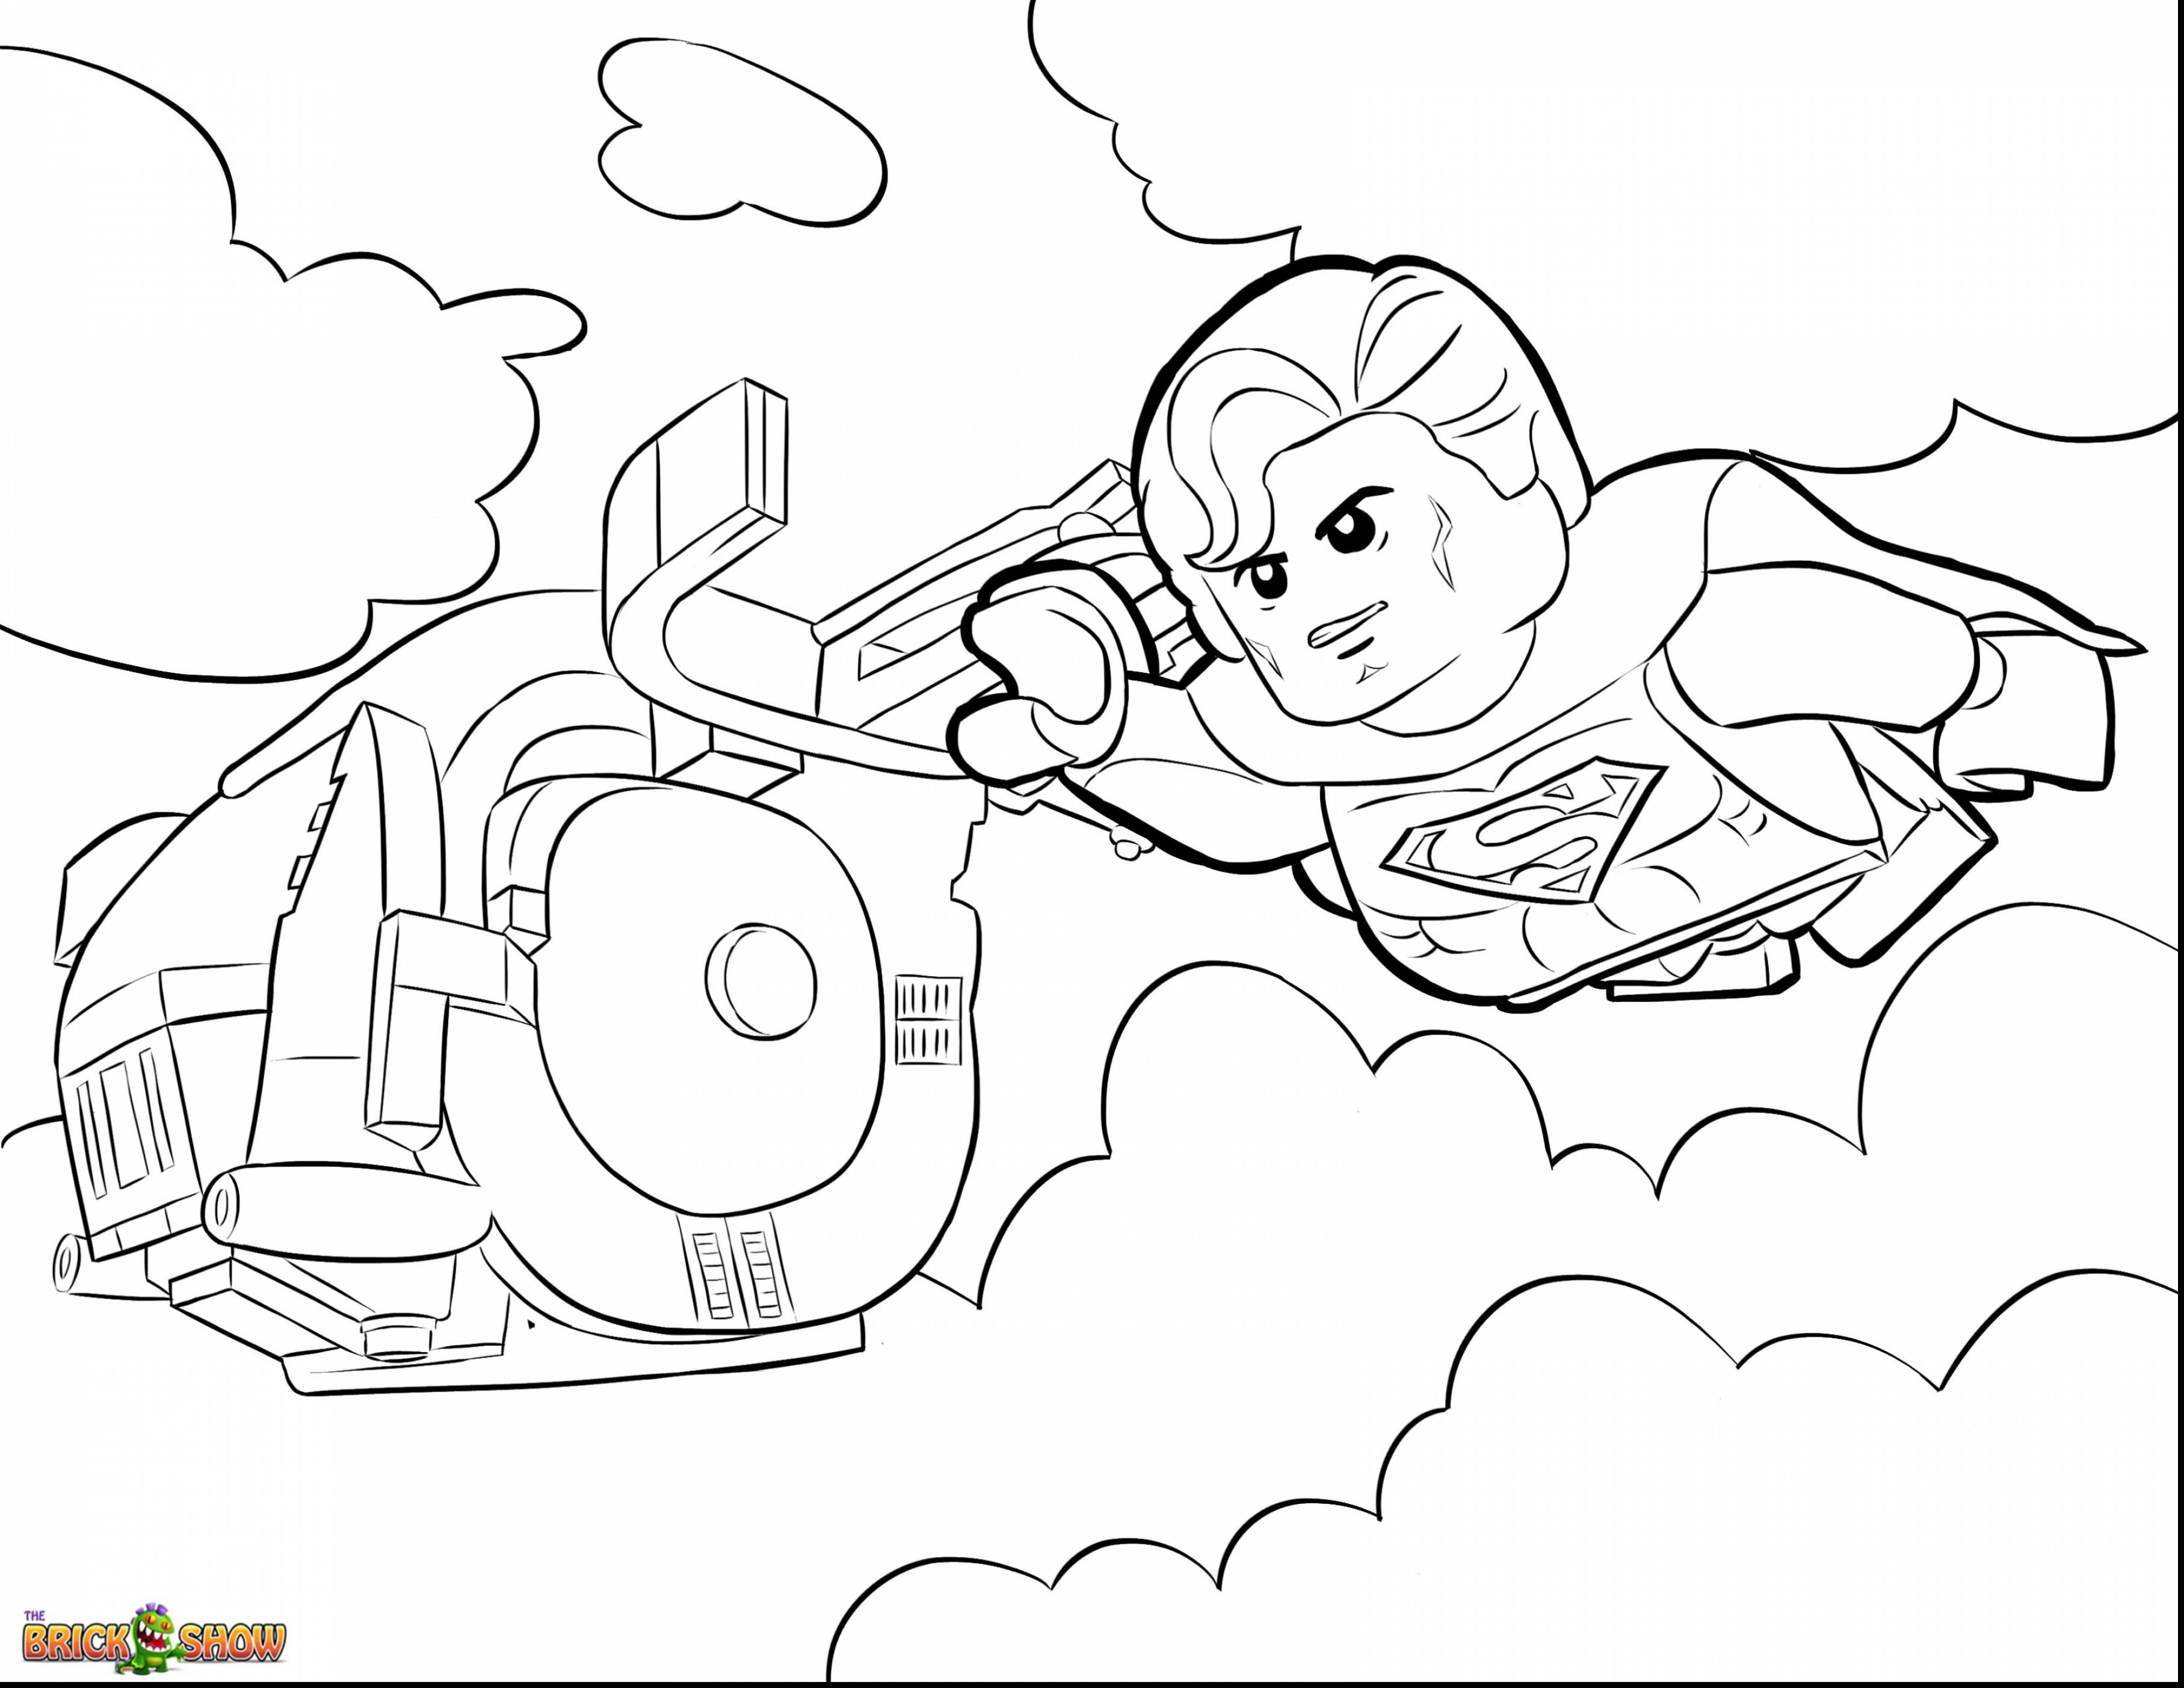 lego justice league coloring pages scales of justice coloring pages at getcoloringscom league coloring lego pages justice